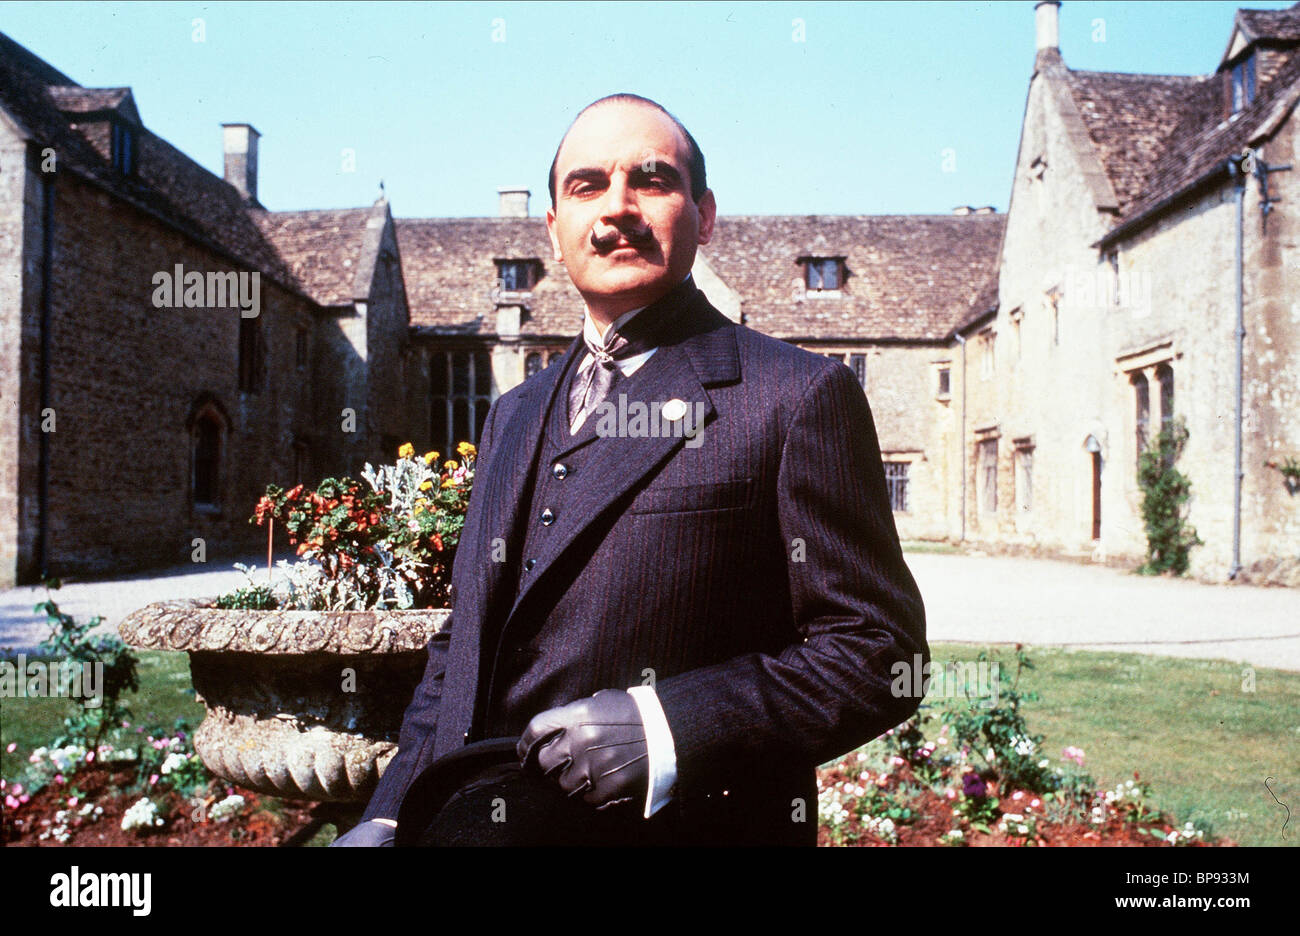 DAVID SUCHET POIROT (1973) - Stock Image